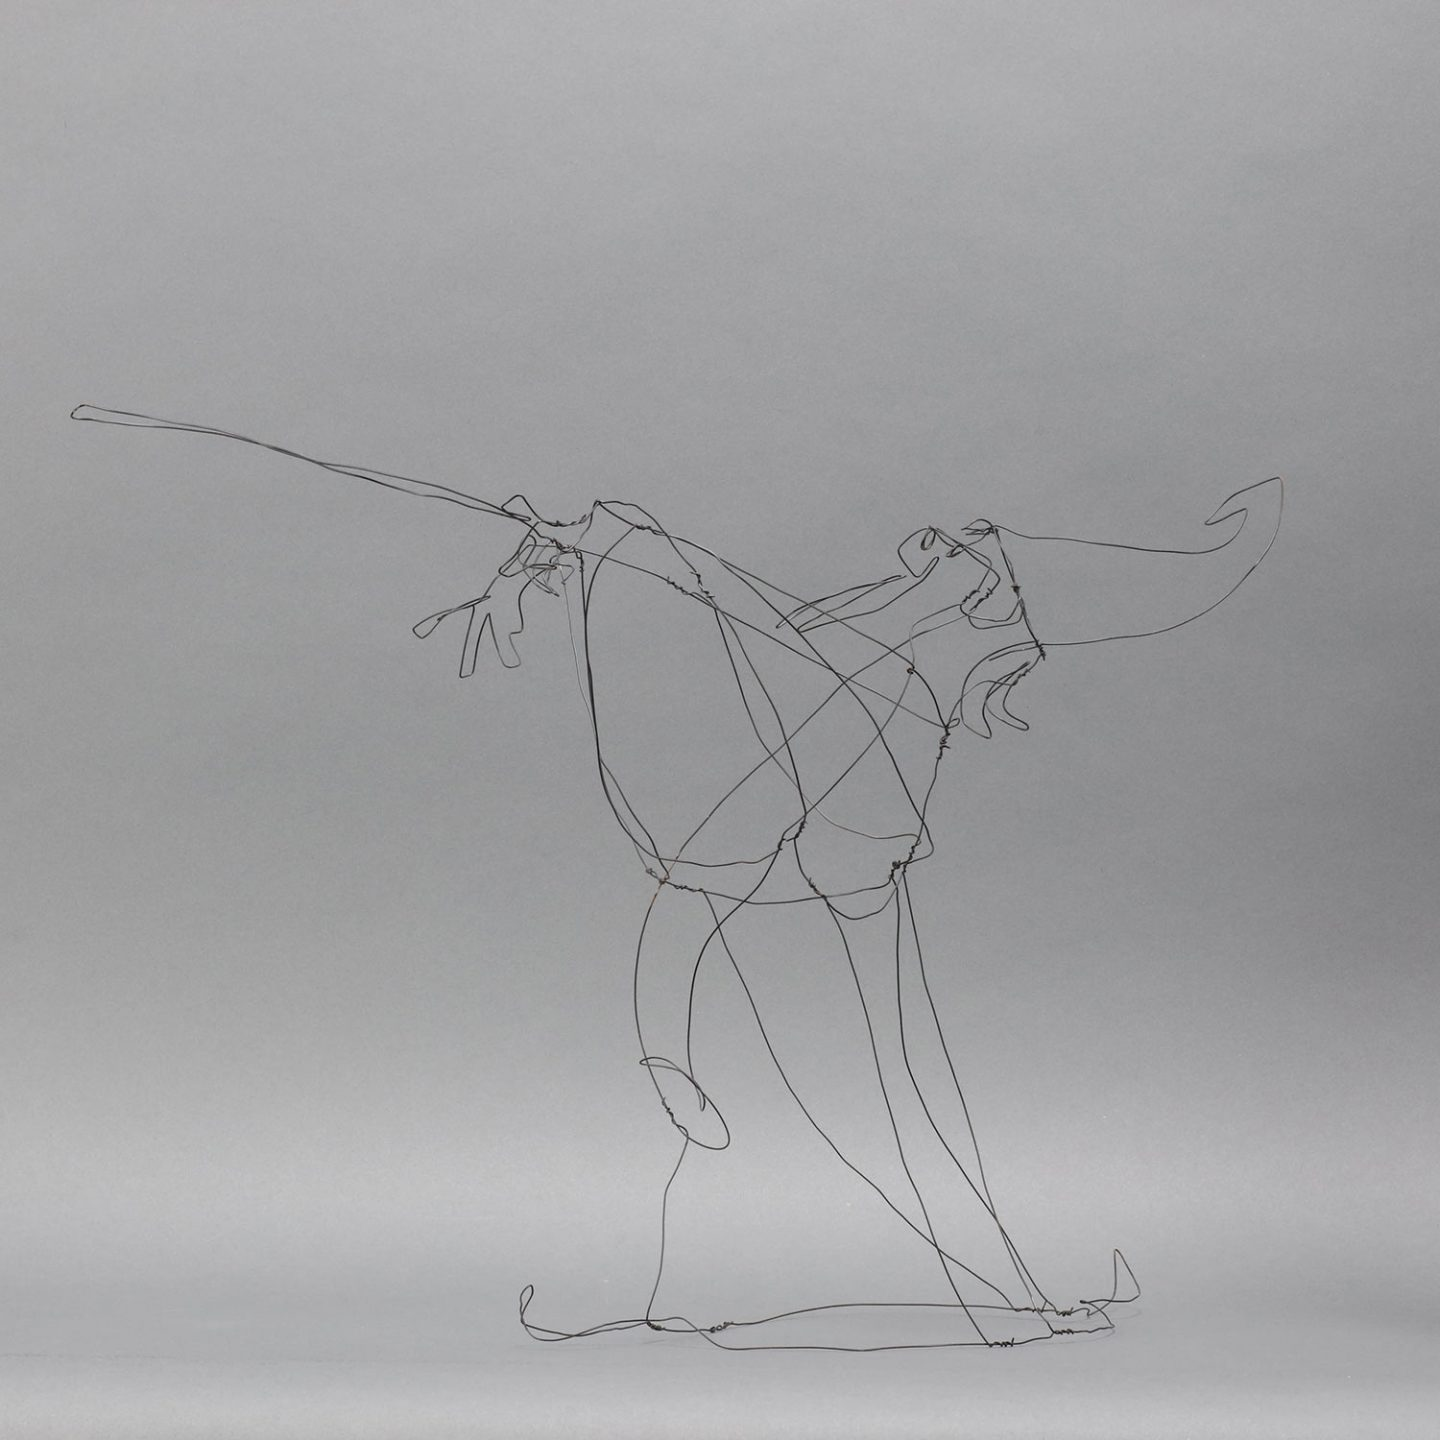 Merlin steel wire sculpture.